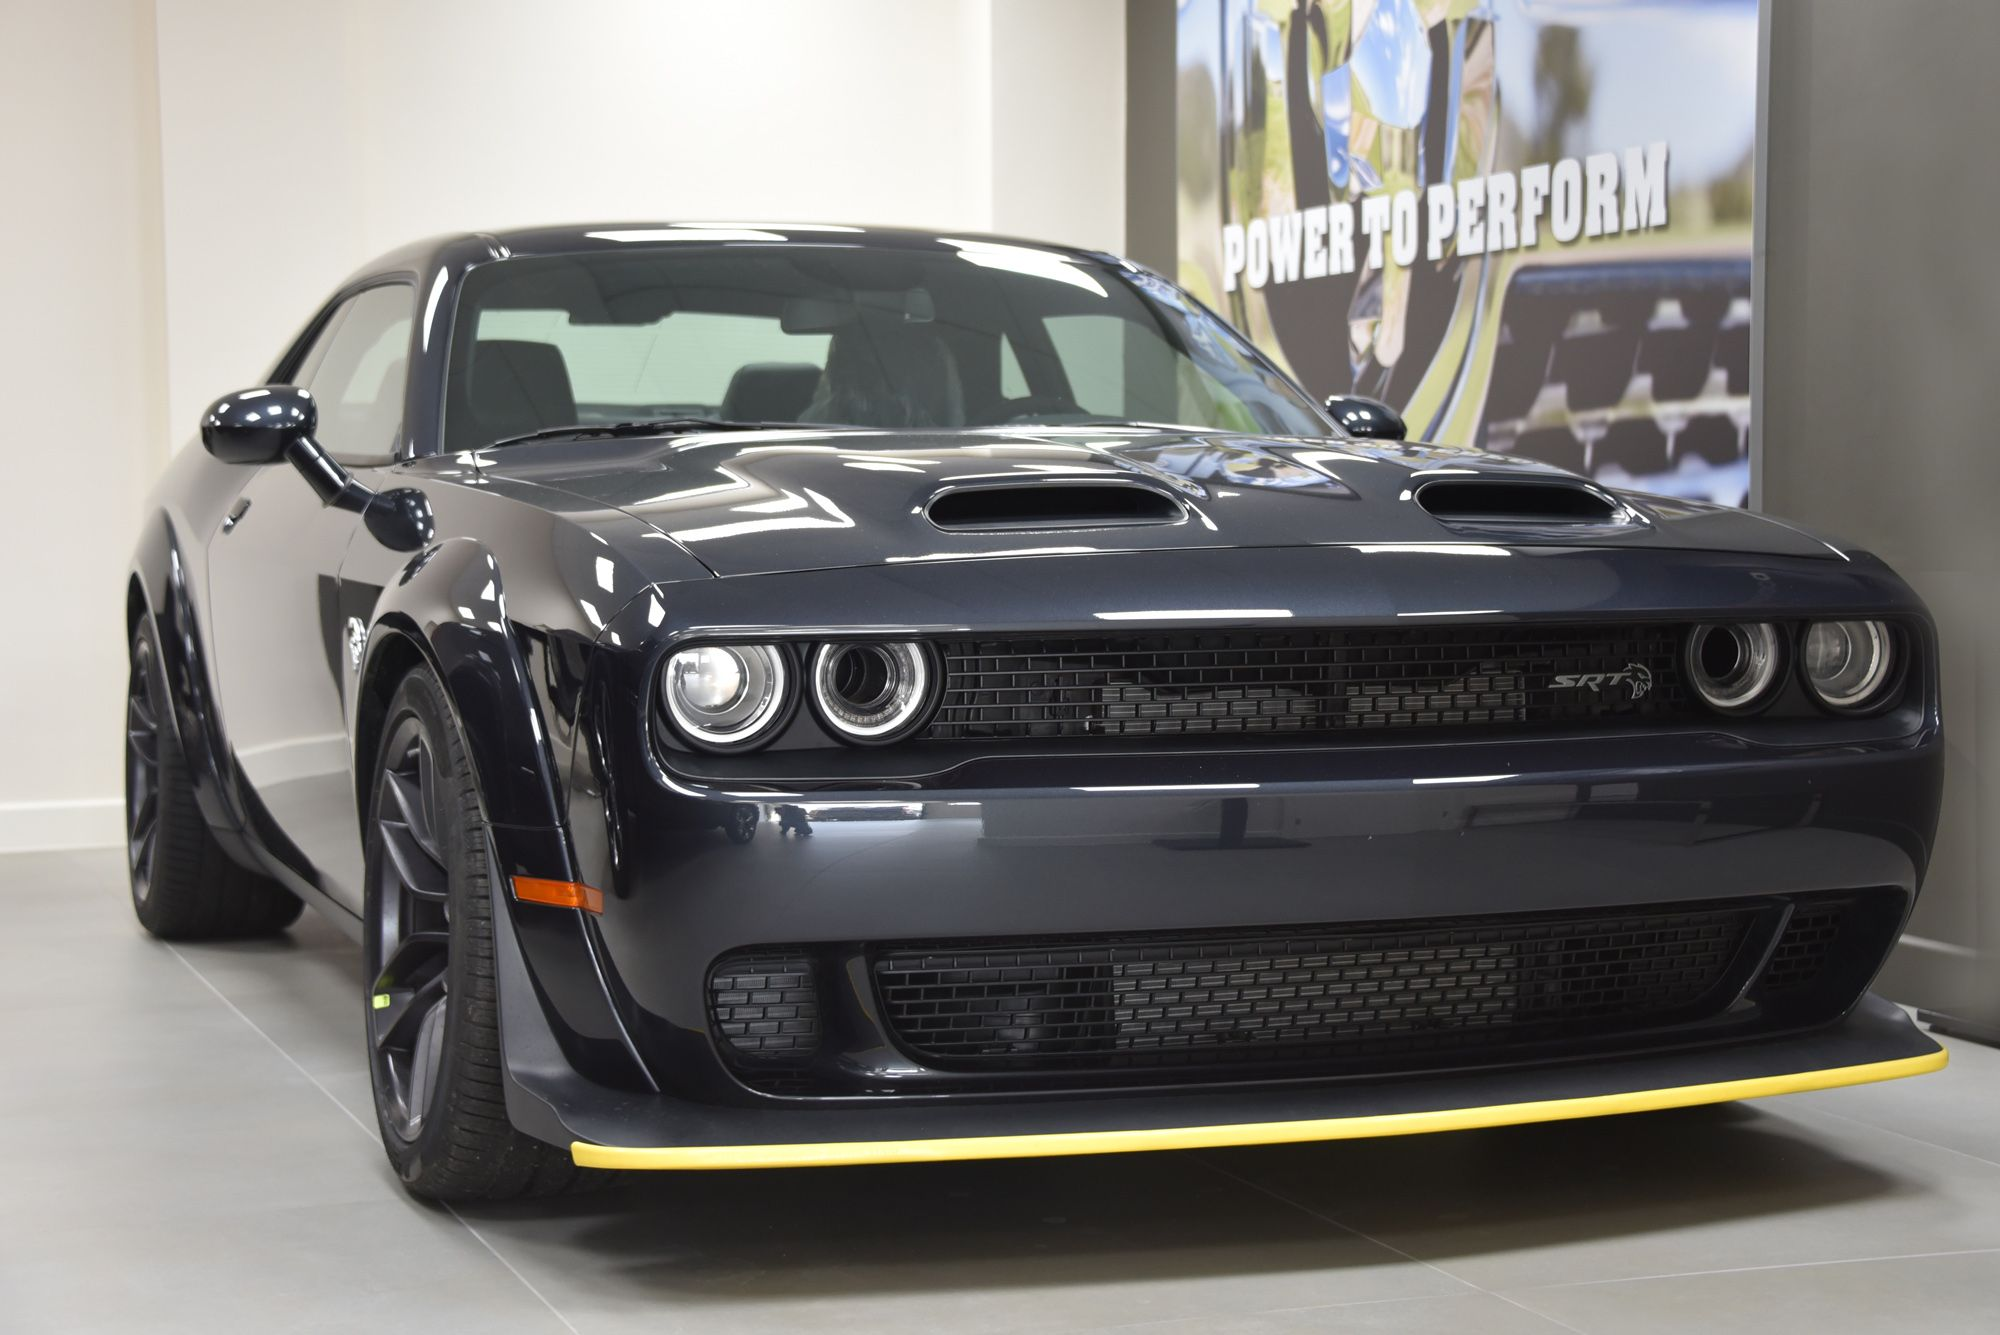 Beautiful Challenger Hellcat Widebody 2019 For Sale From David Boatwright Partnership Official Dealers For Hellcat Challenger Hellcat Dodge Challenger Hellcat